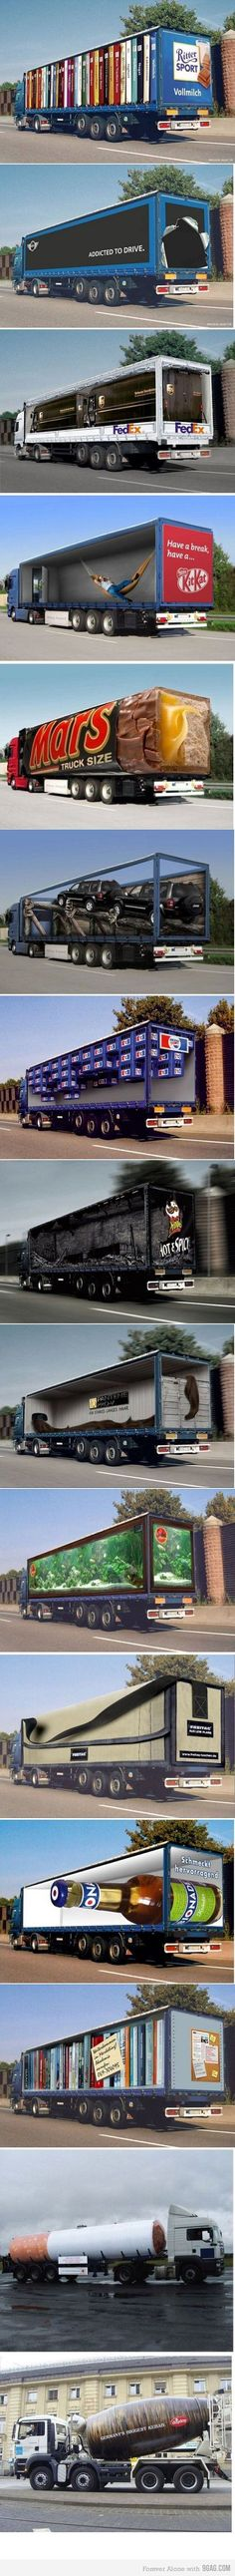 Creative inspiration for your next advertising campaign!